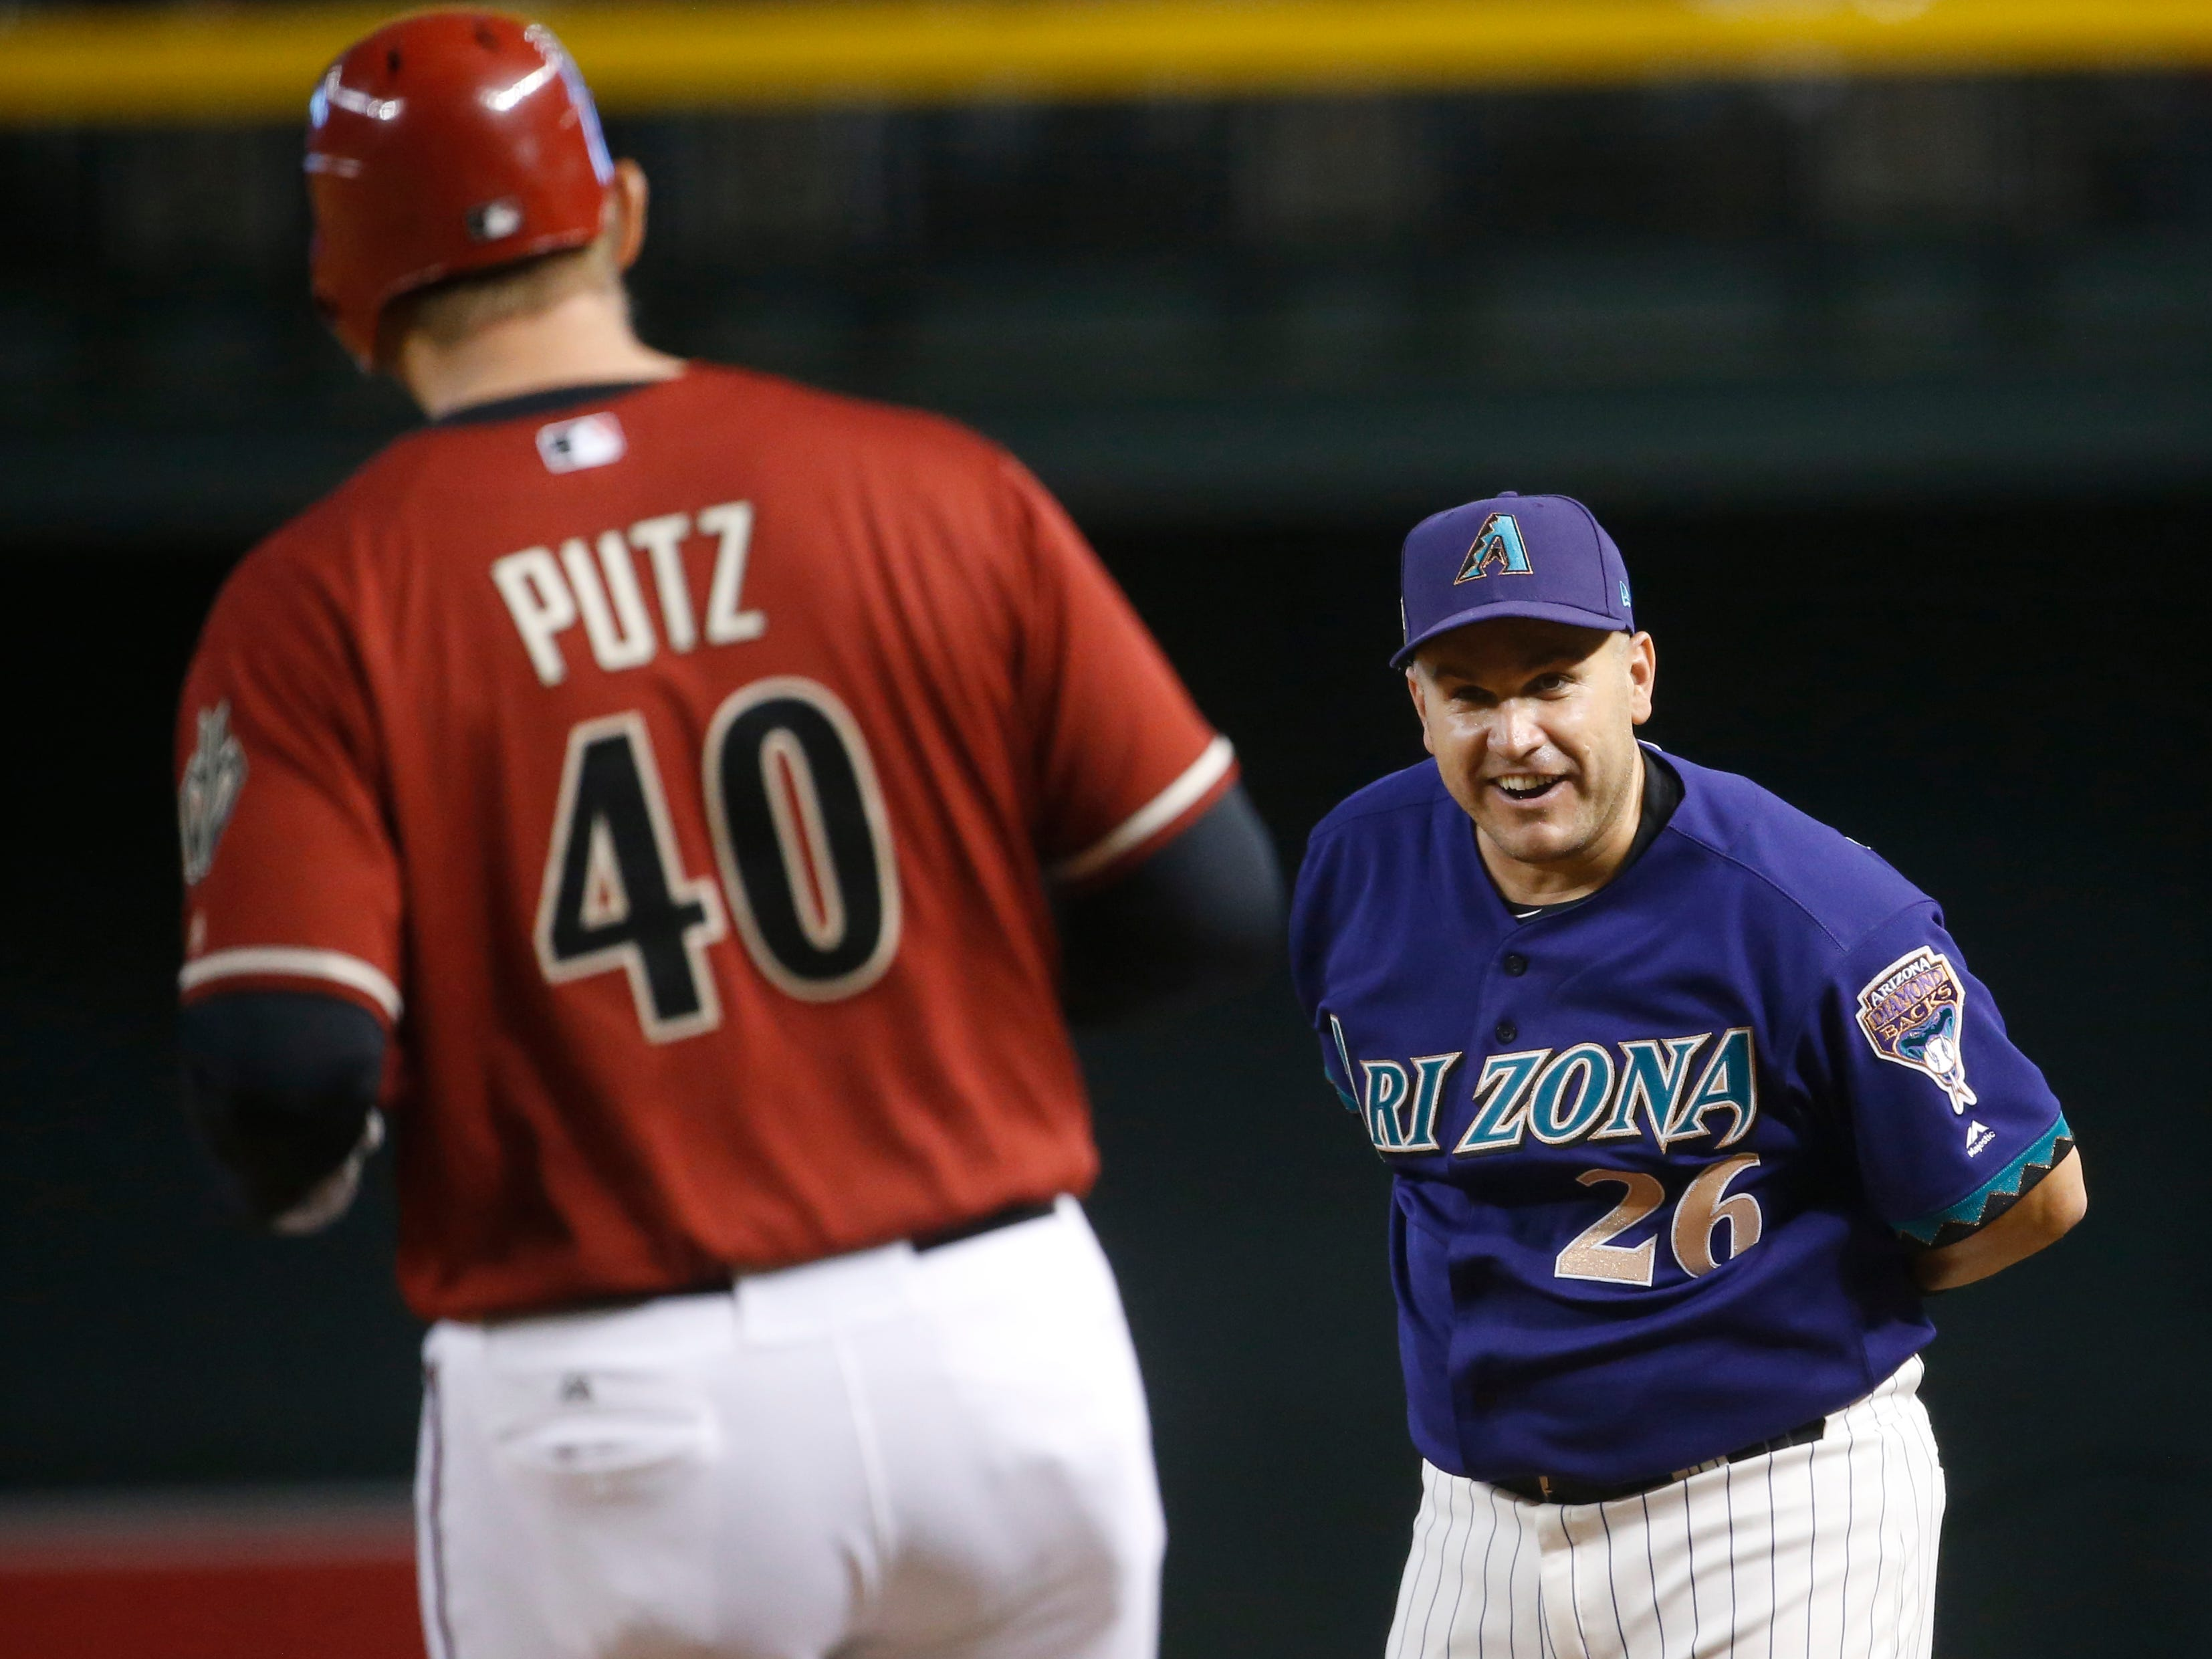 Diamondbacks Purple team's Miguel Montero (26) jokes with Red team's JJ Putz after Putz singles in his at bat against the Purple team during the Generations Diamondbacks Alumni game at Chase Field in Phoenix, Ariz. on Aug. 4, 2018.